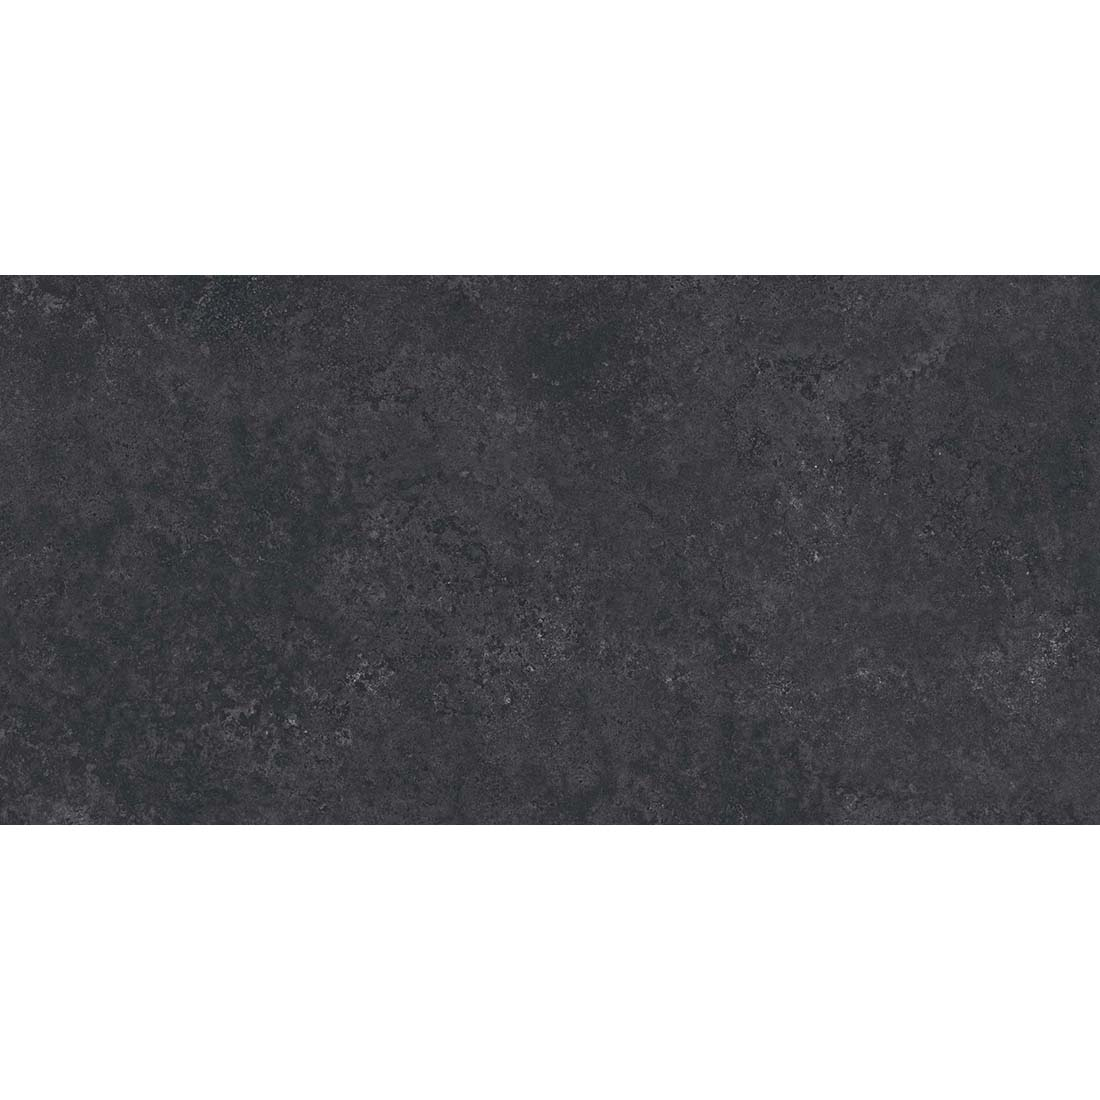 Absolute 60x120 Nero 1